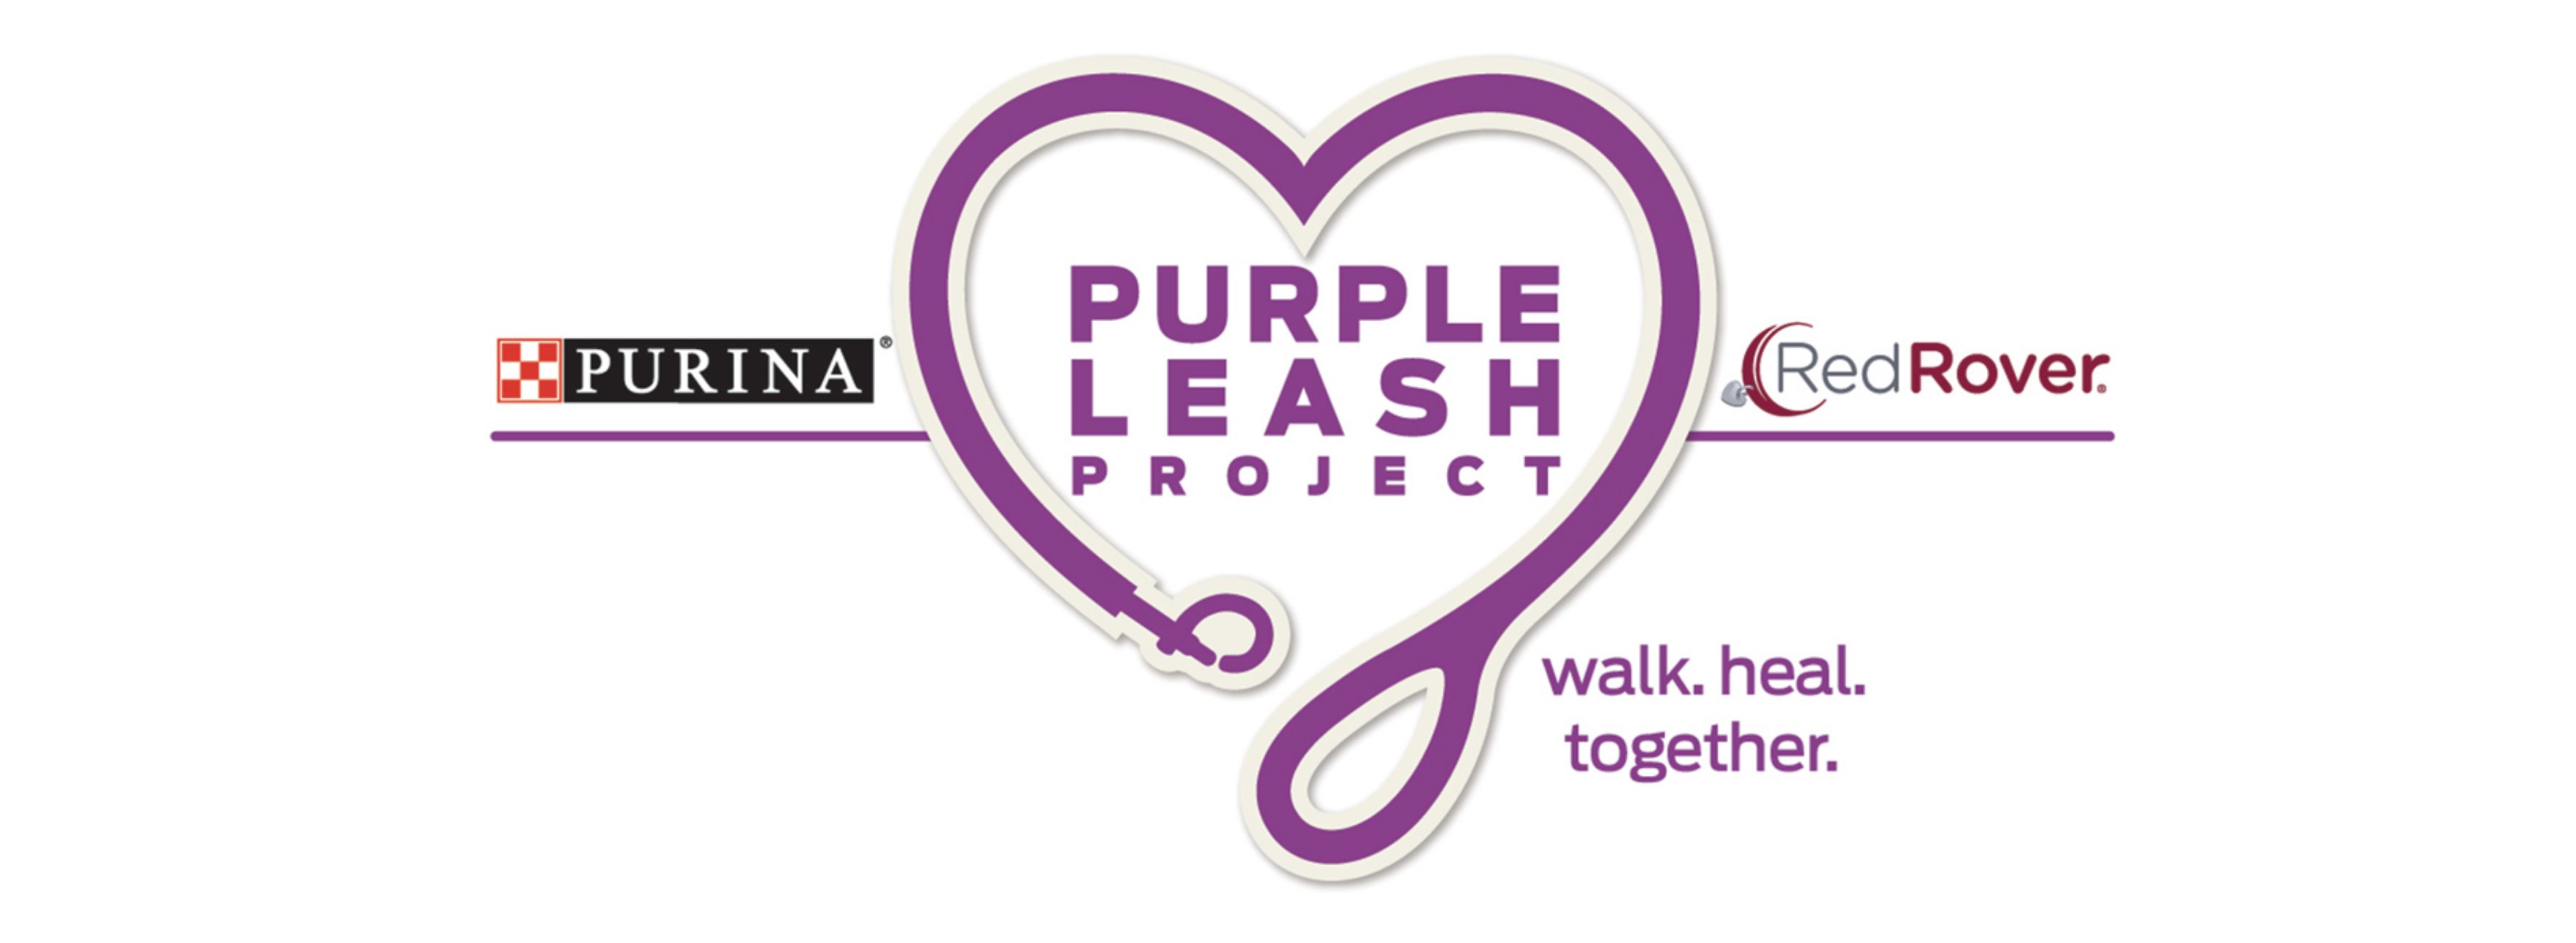 The Purina Purple Leash Project supporting victims of domestic abuse